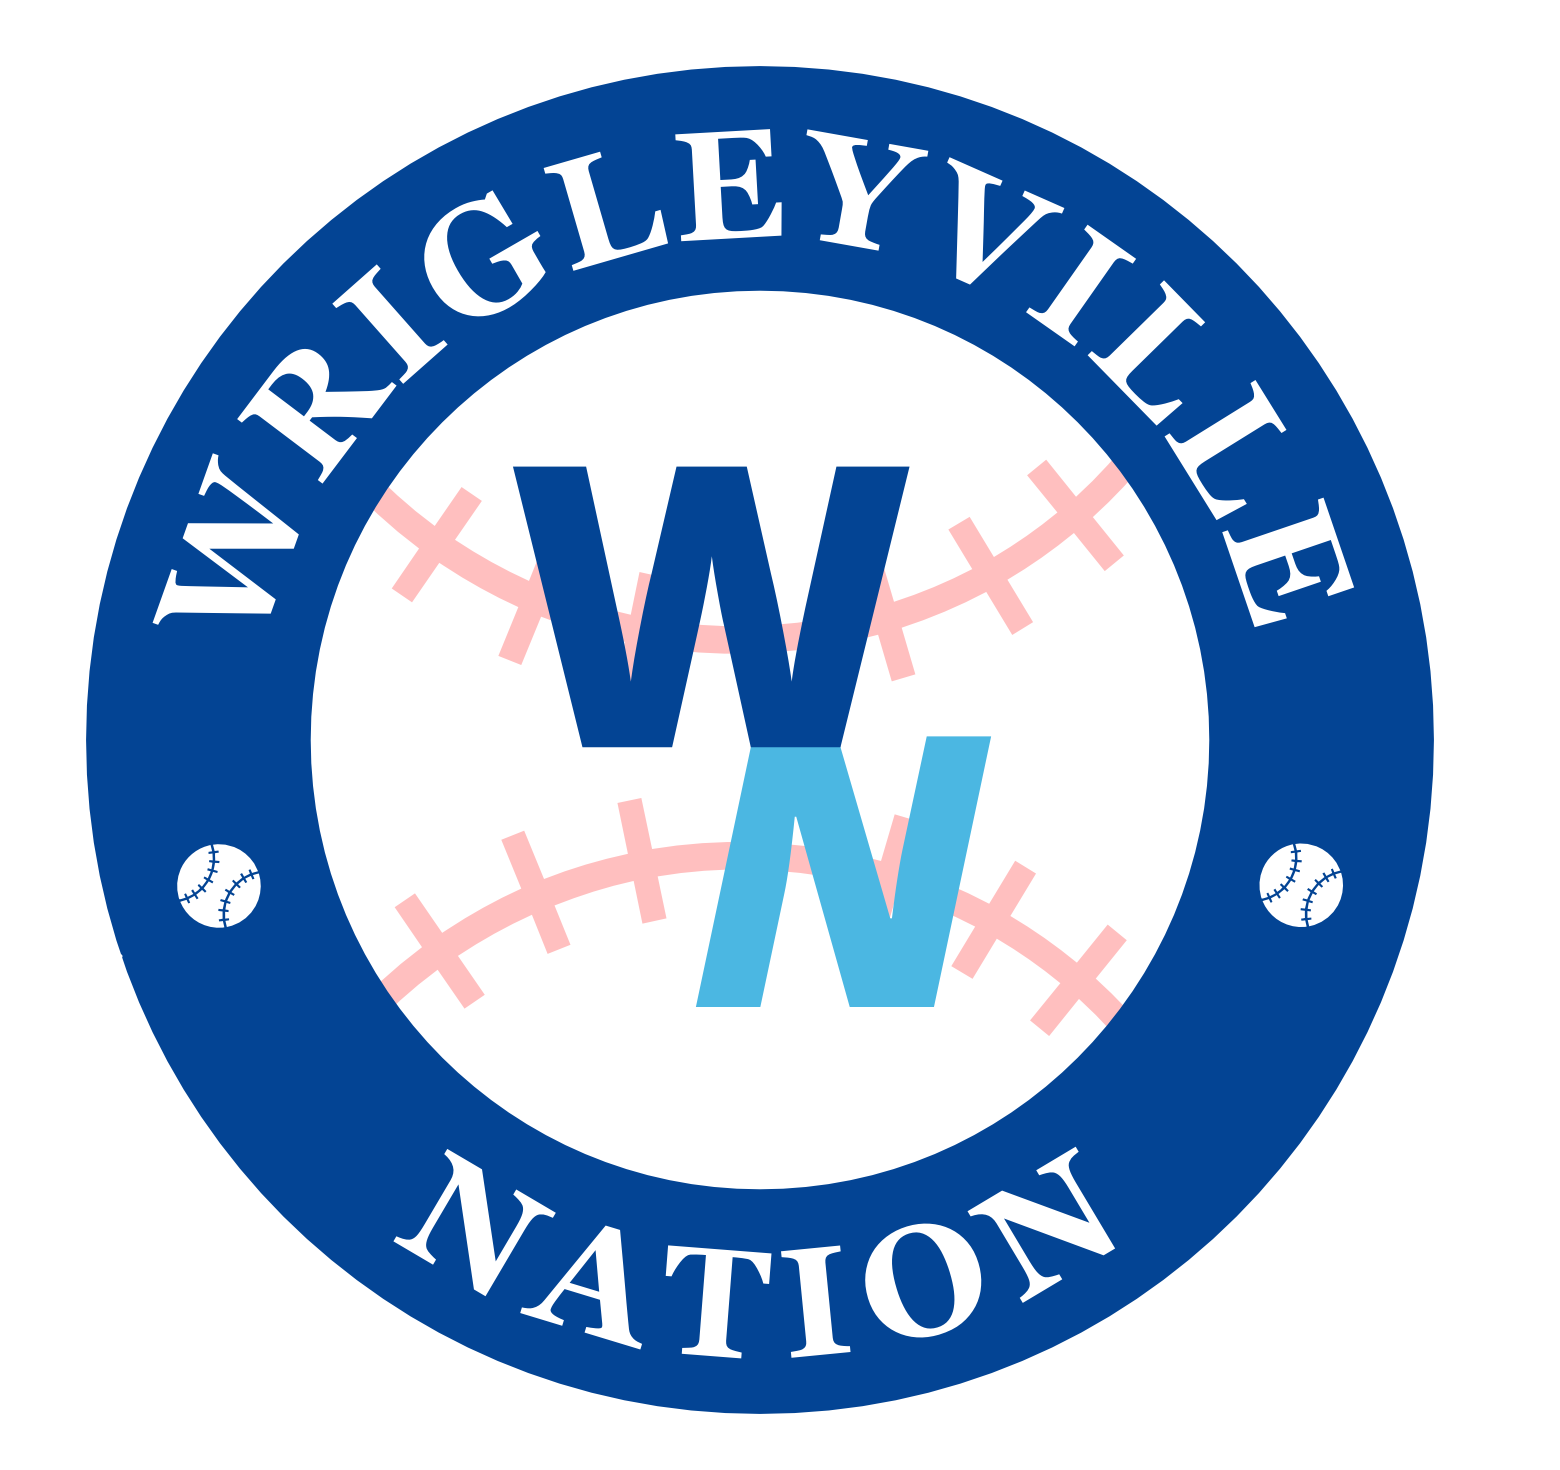 Wrigleyville Nation Ep 224 - Guest: Sean Sears, Cubs Season Preview, Testing Concerns, Rooftops, & More  show art